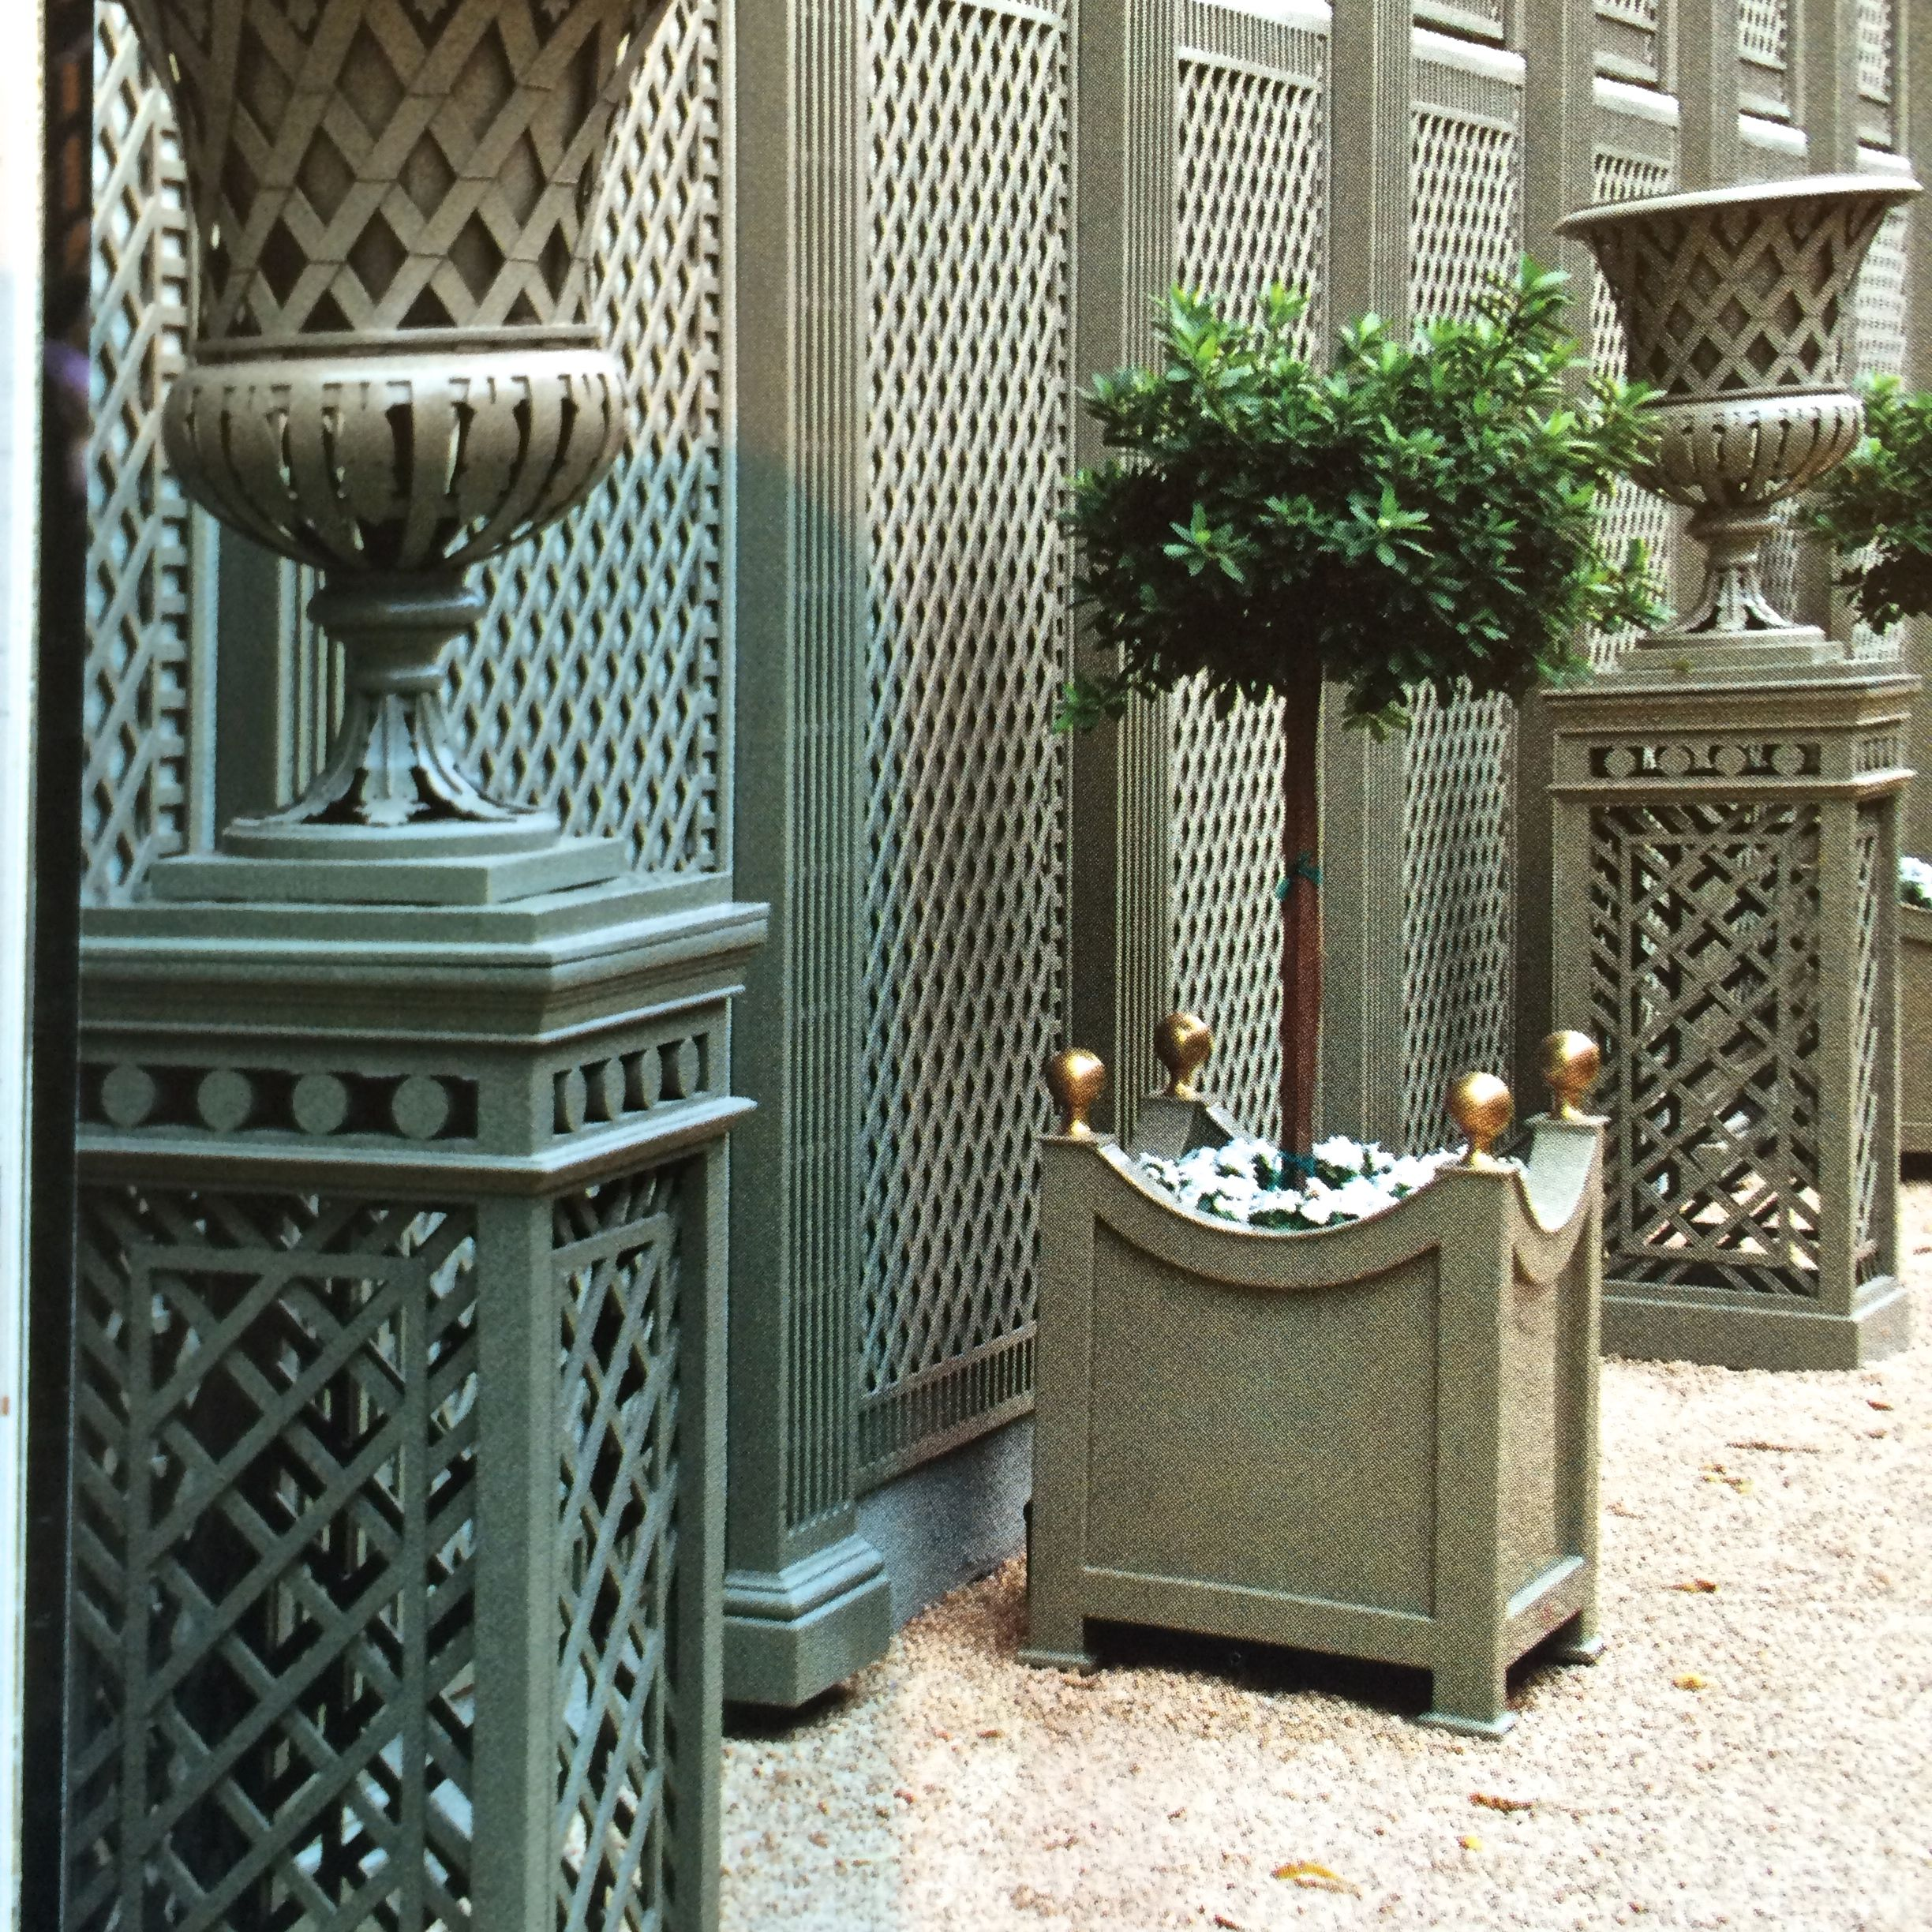 Trellises from Accents of France, 323-653-4006, www.accentsoffrance.com.